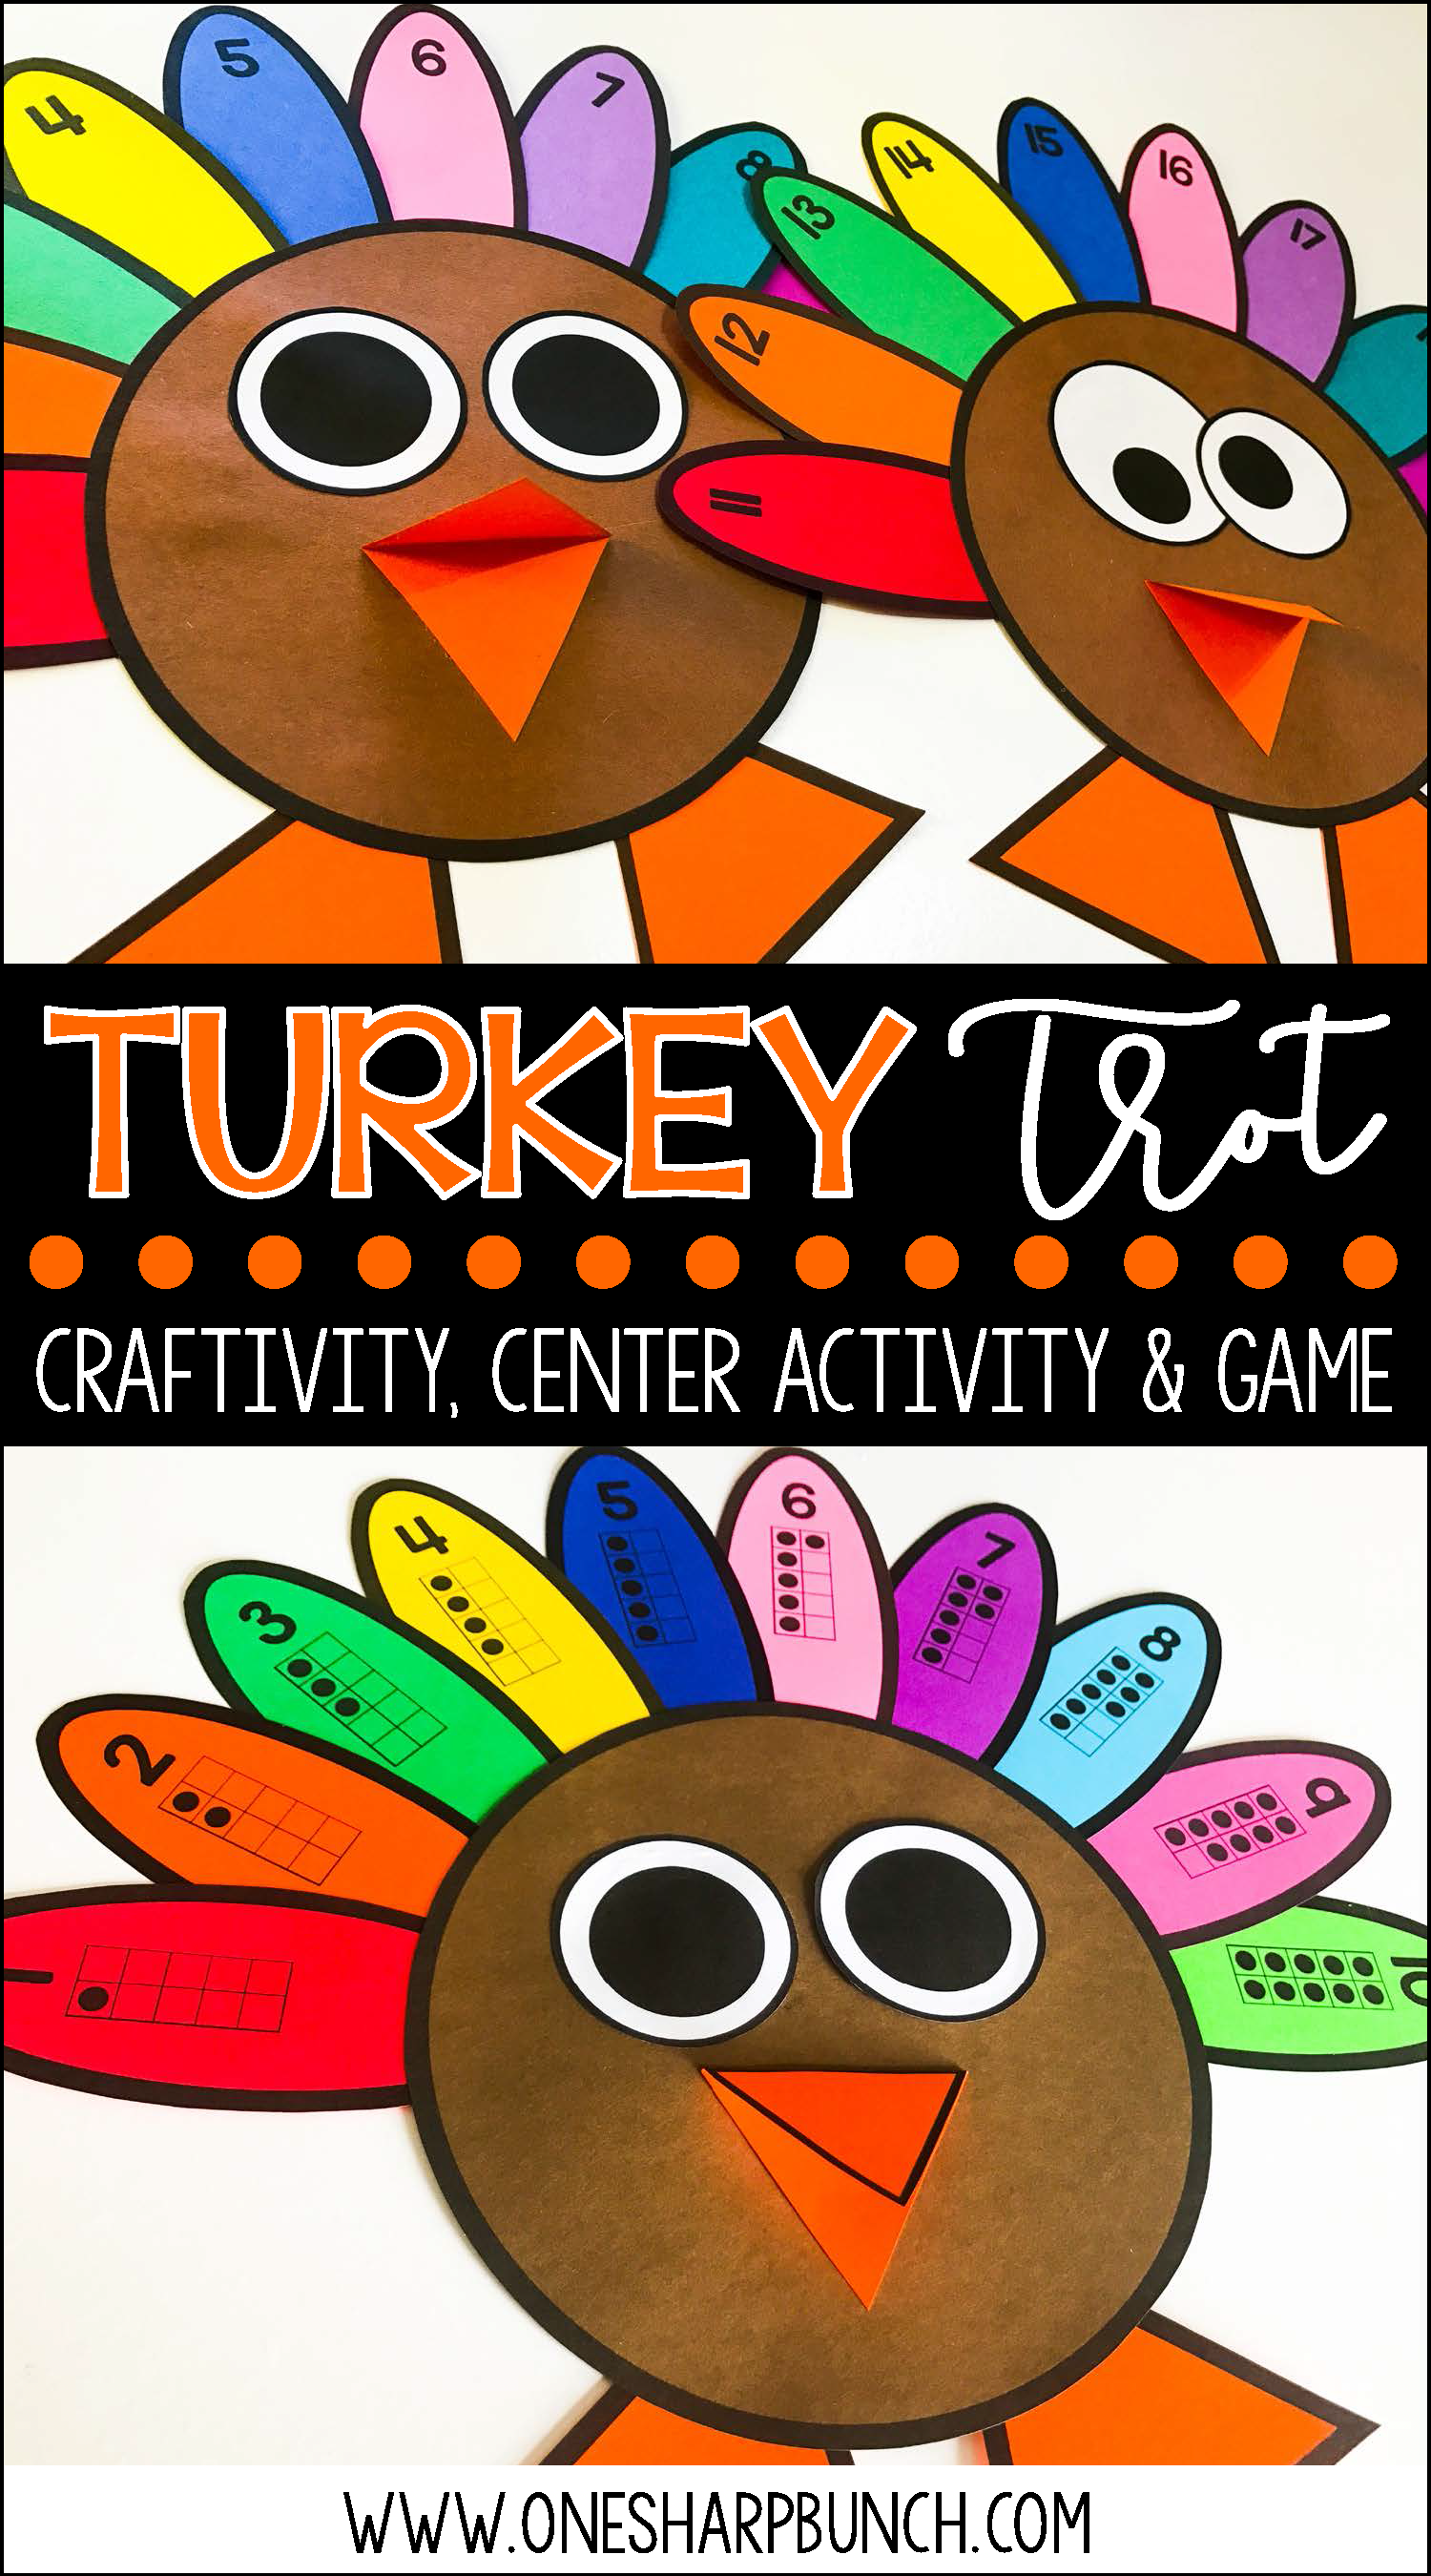 Turkey Trot Craft